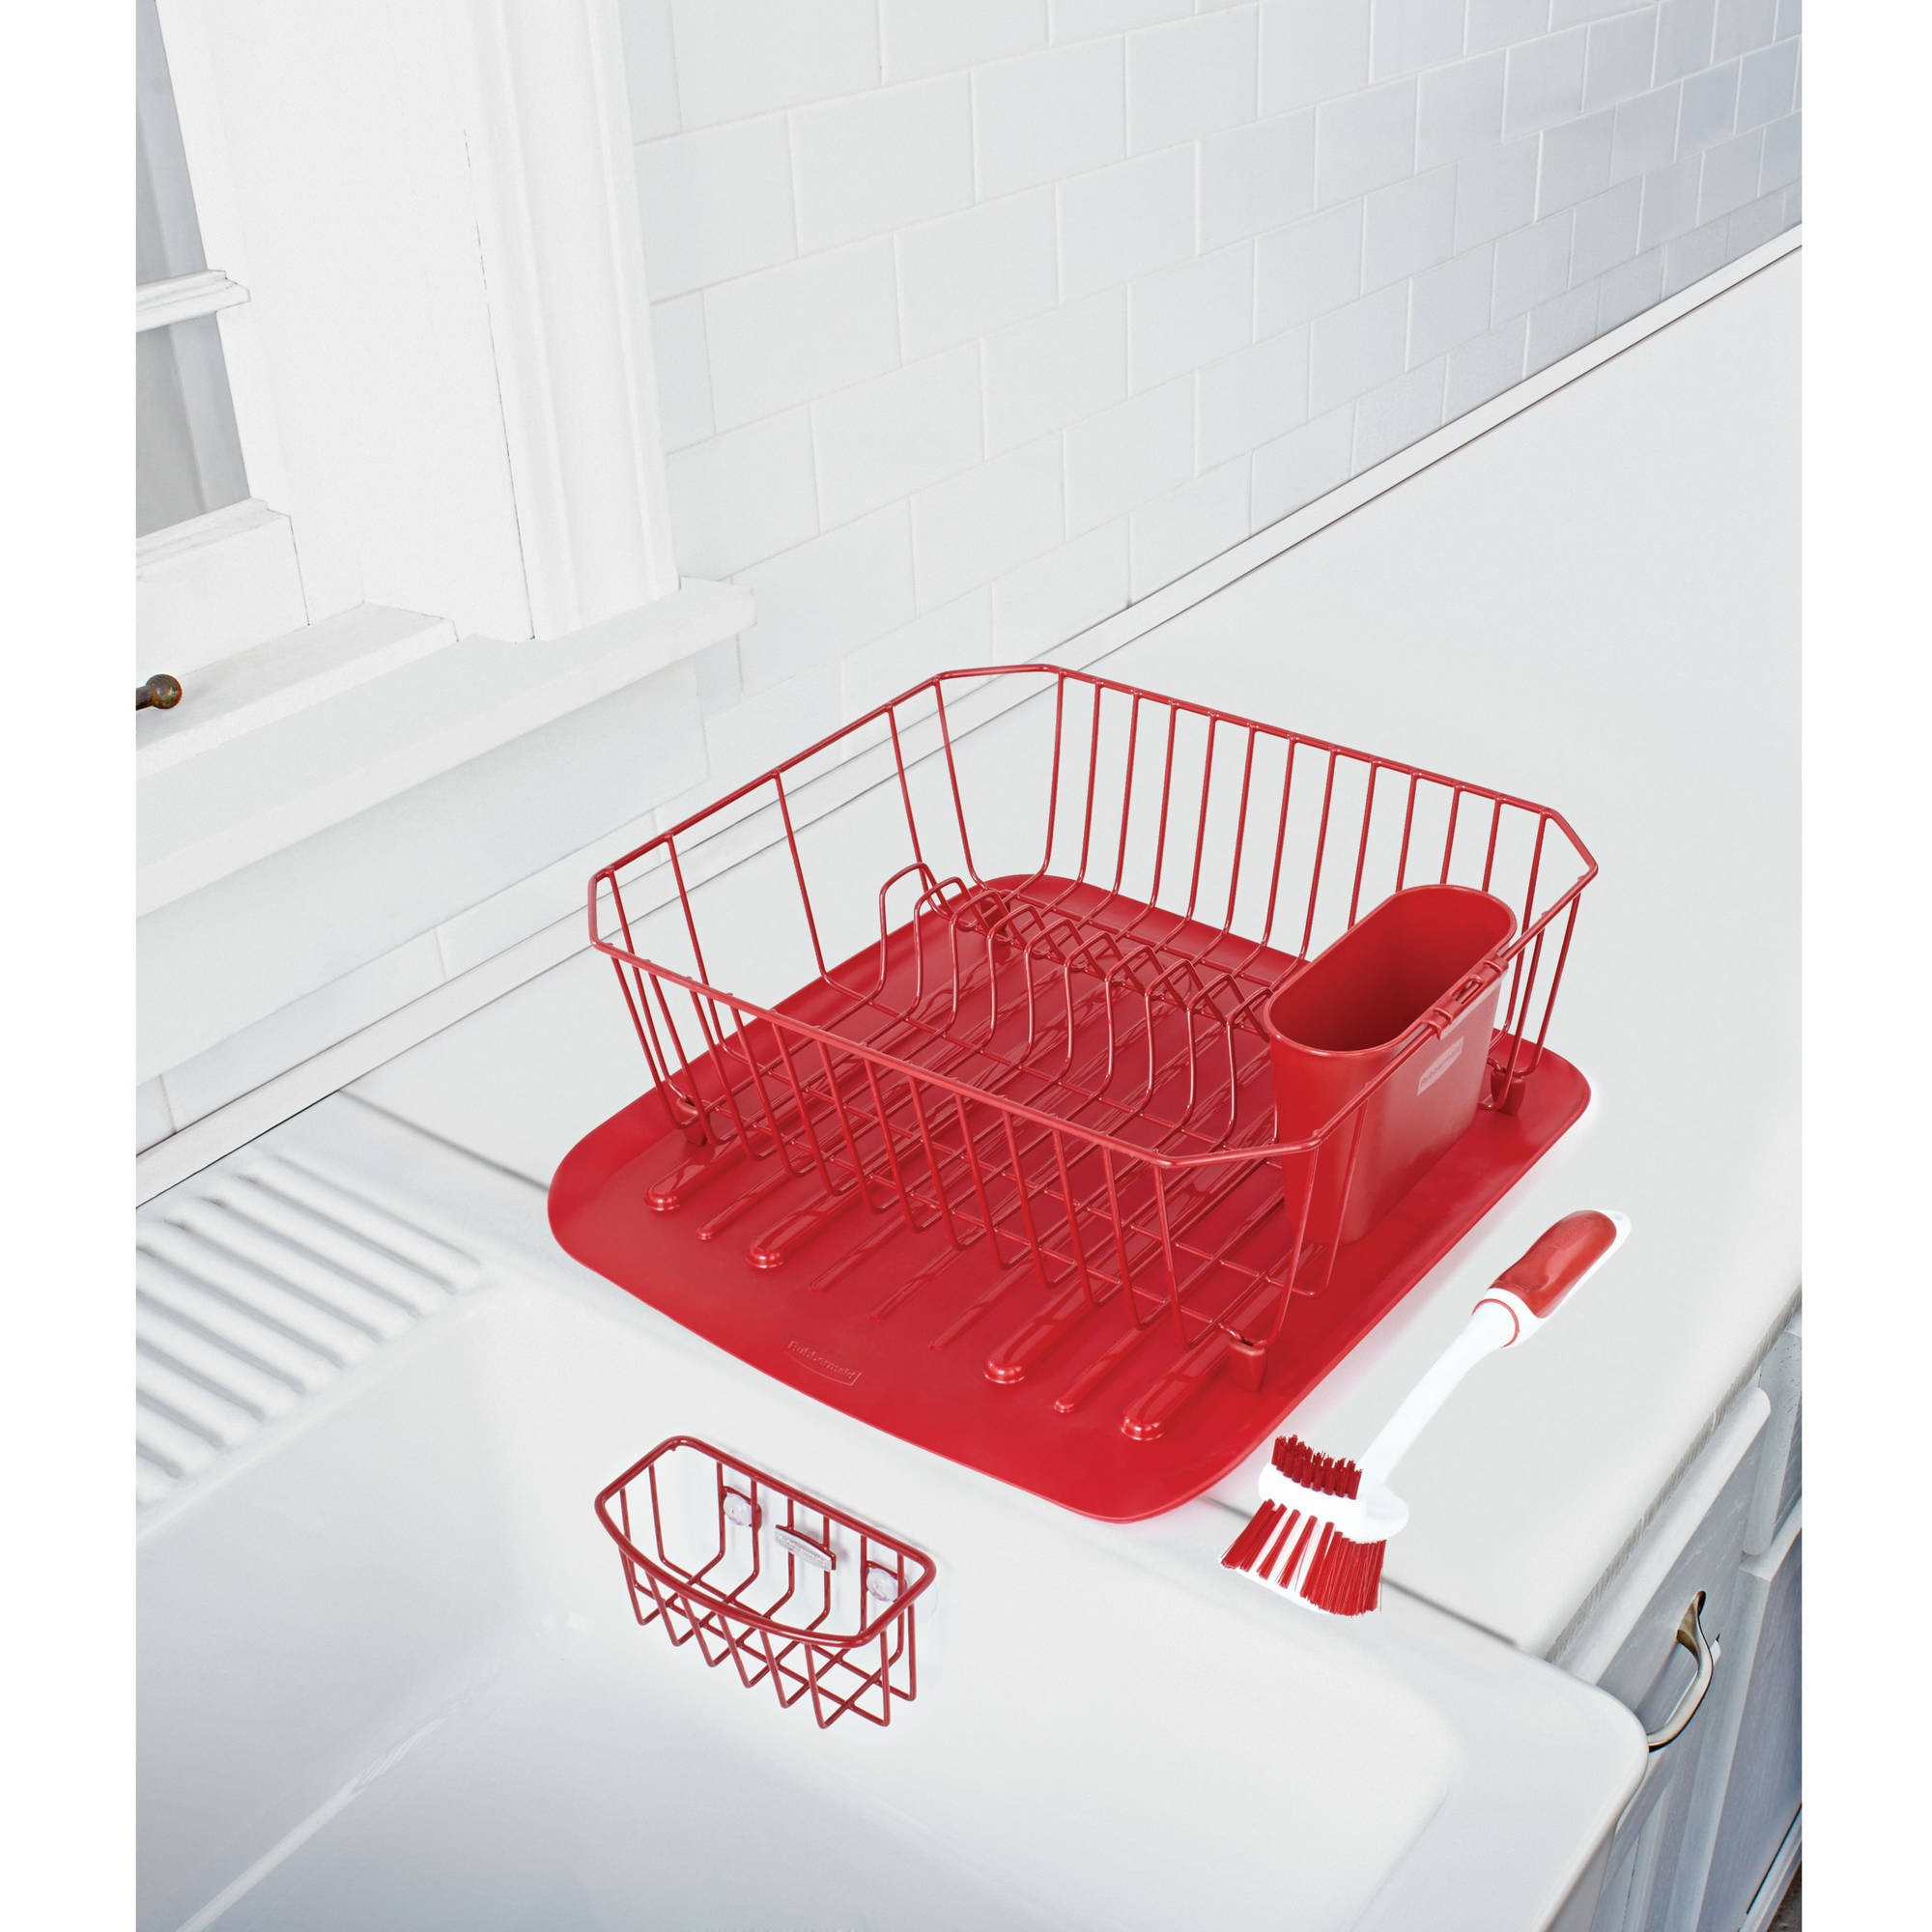 Rubbermaid Antimicrobial Sink Dish Rack Drainer Set, Red, 4-Piece Set